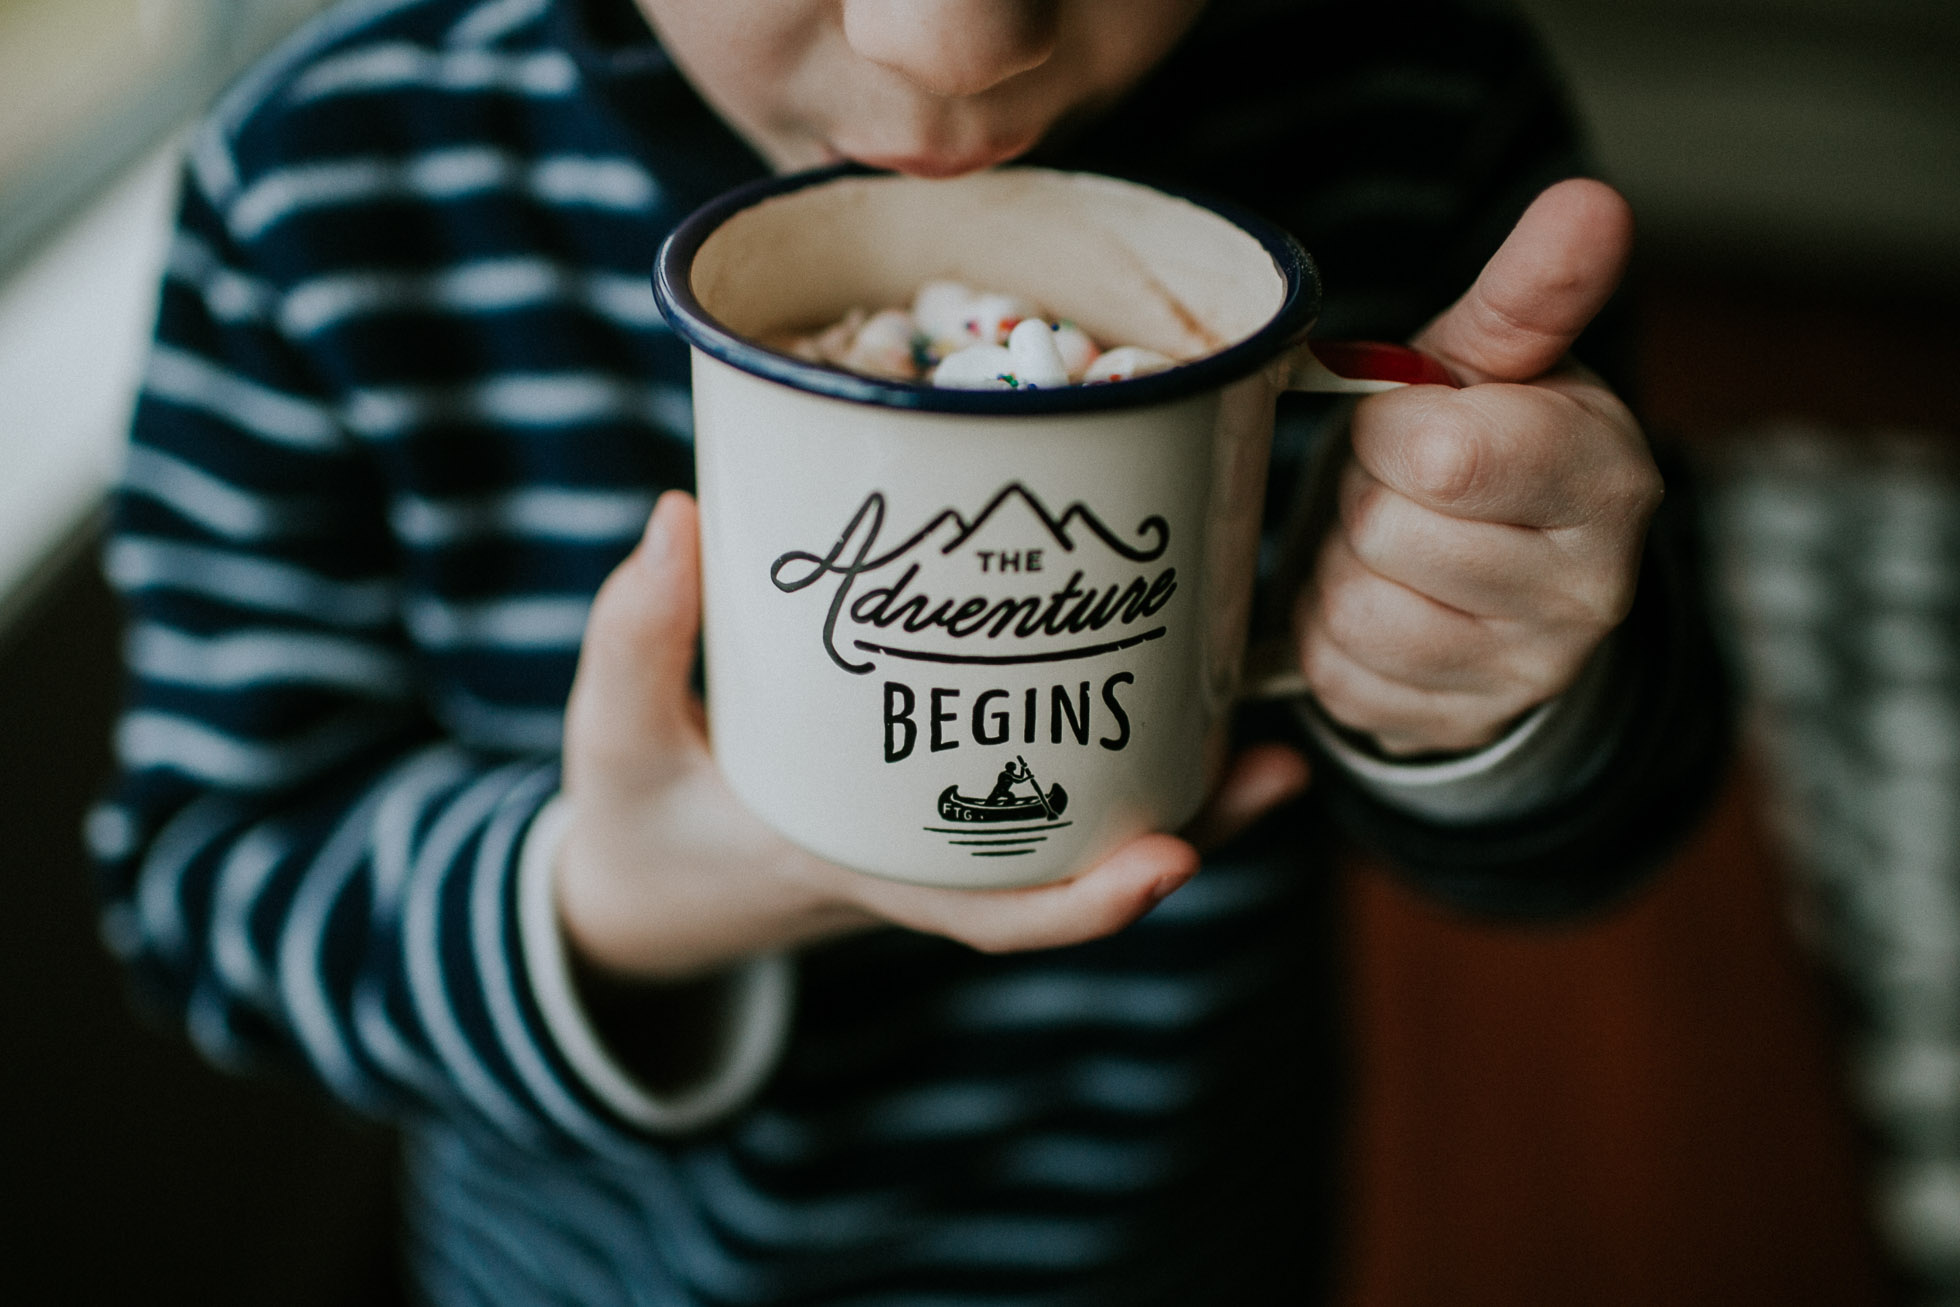 the adventure begins mug with hot chocolate in it by Cassandra Casley